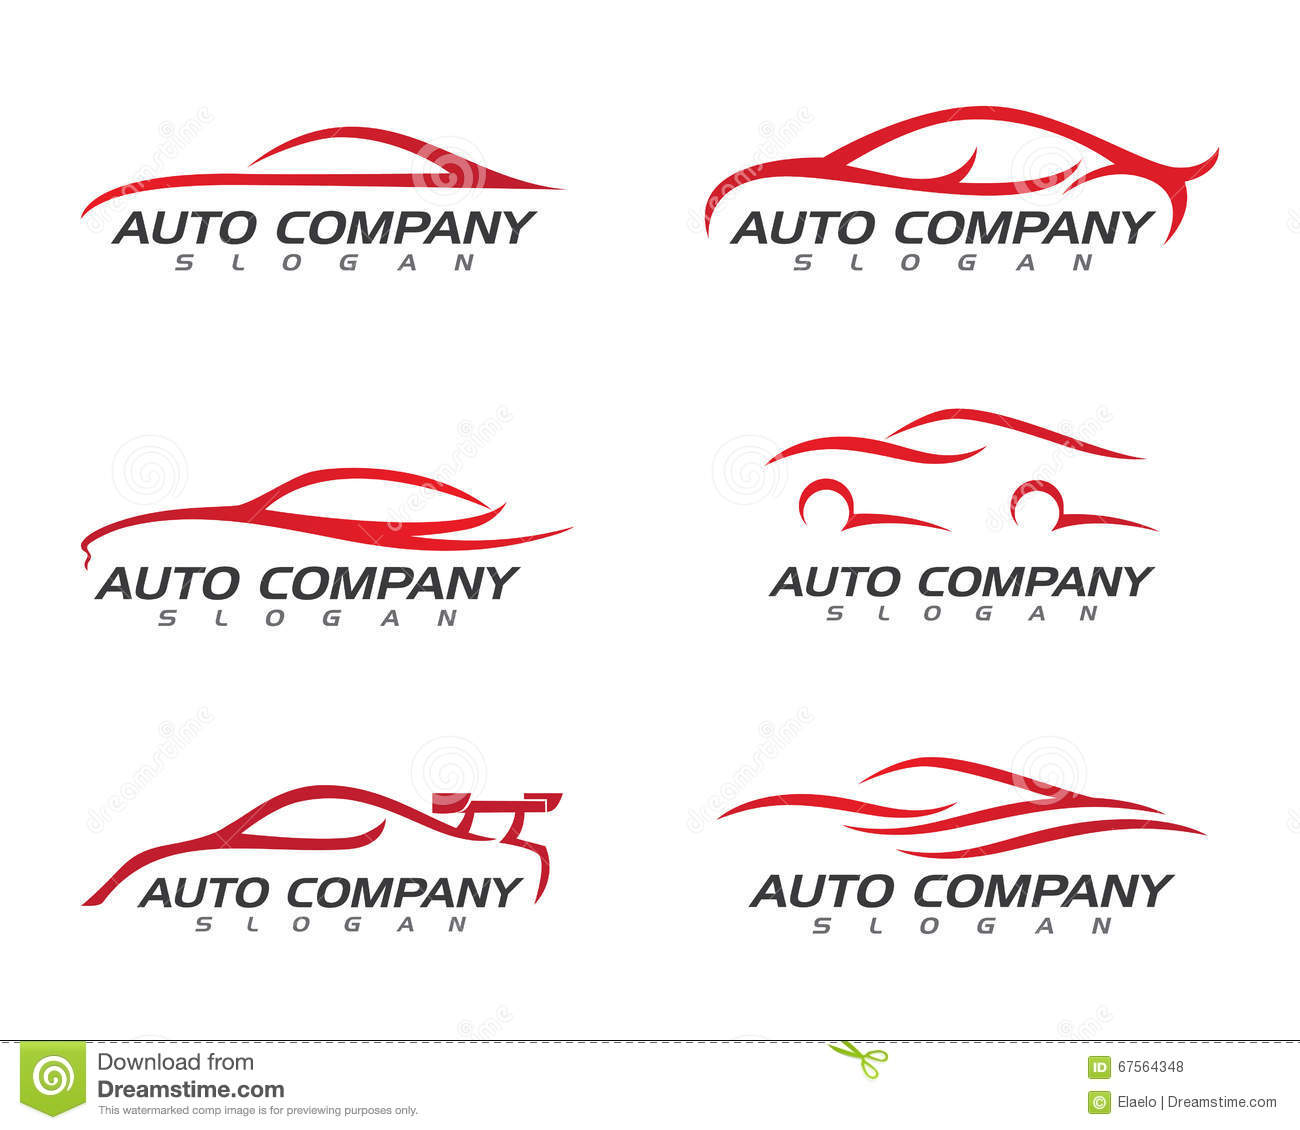 Car logo design free vector download 69562 Free vector